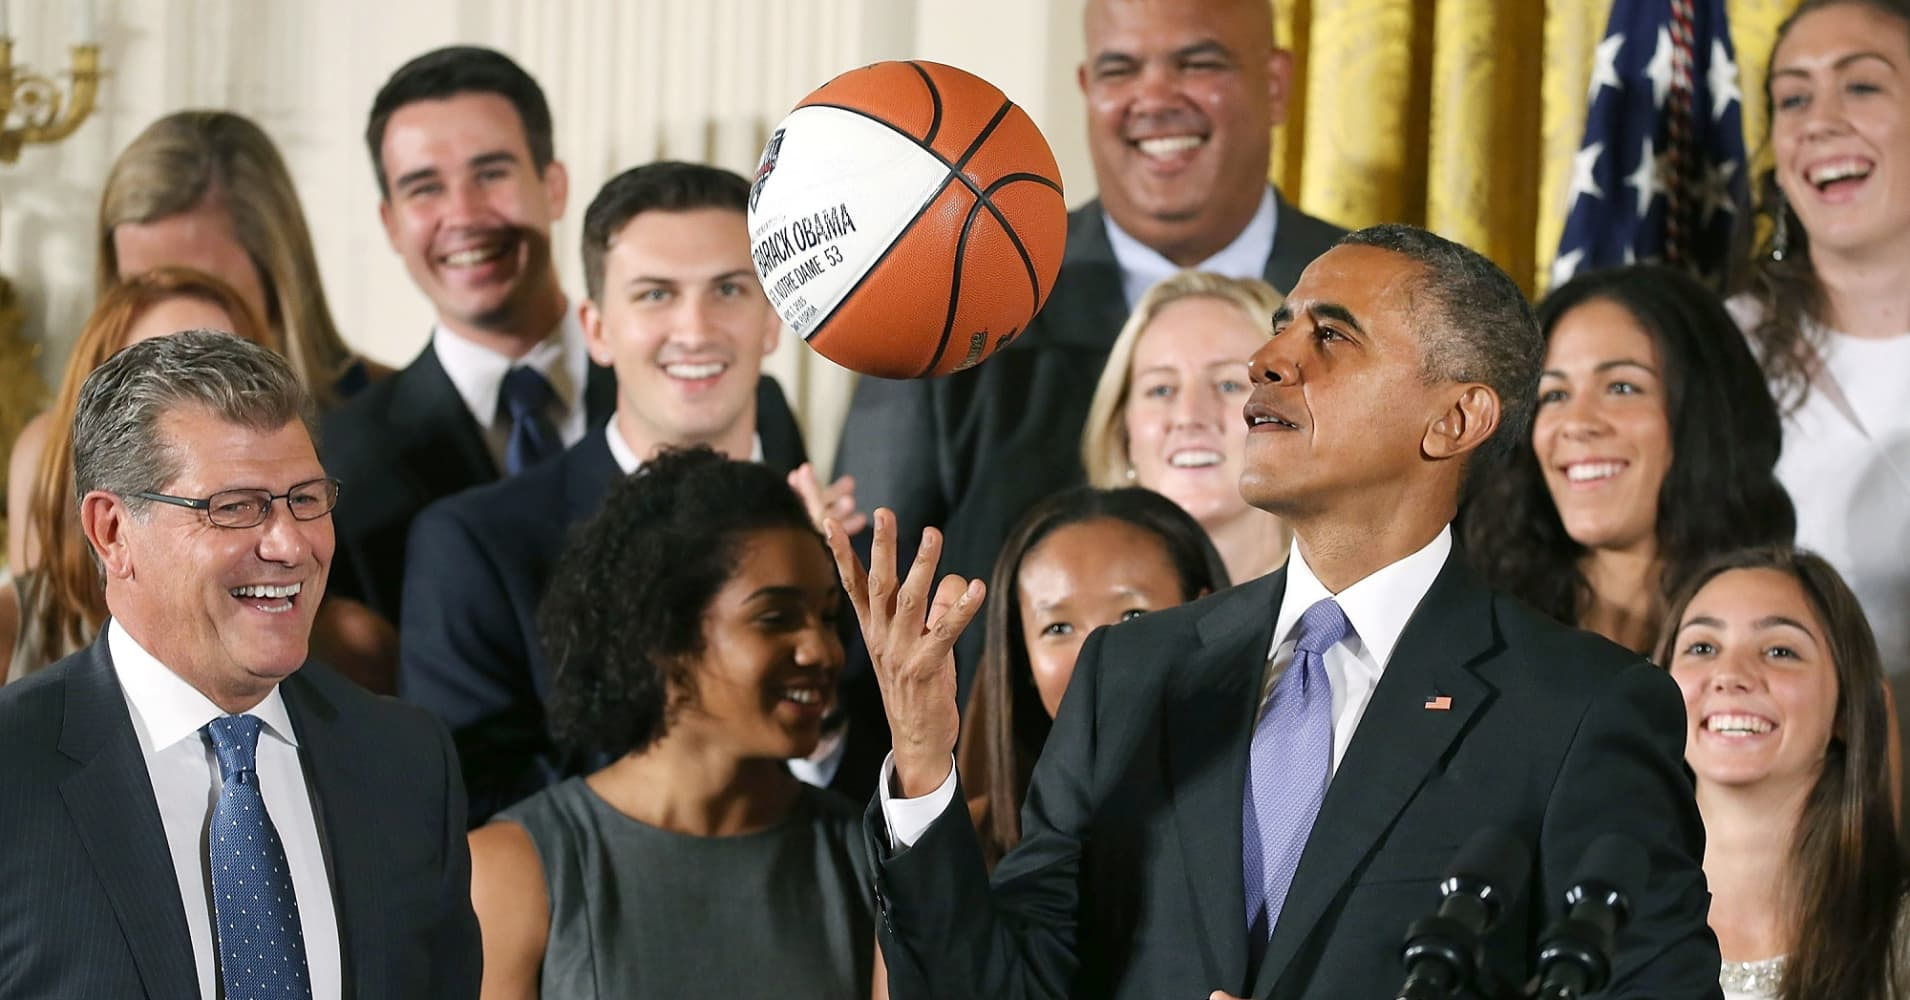 U.S. President Barack Obama tosses up a basketball given to him by coach Geno Auriemma (L) while honoring the 2015 NCAA Women's Basketball Champion University of Connecticut Huskies.